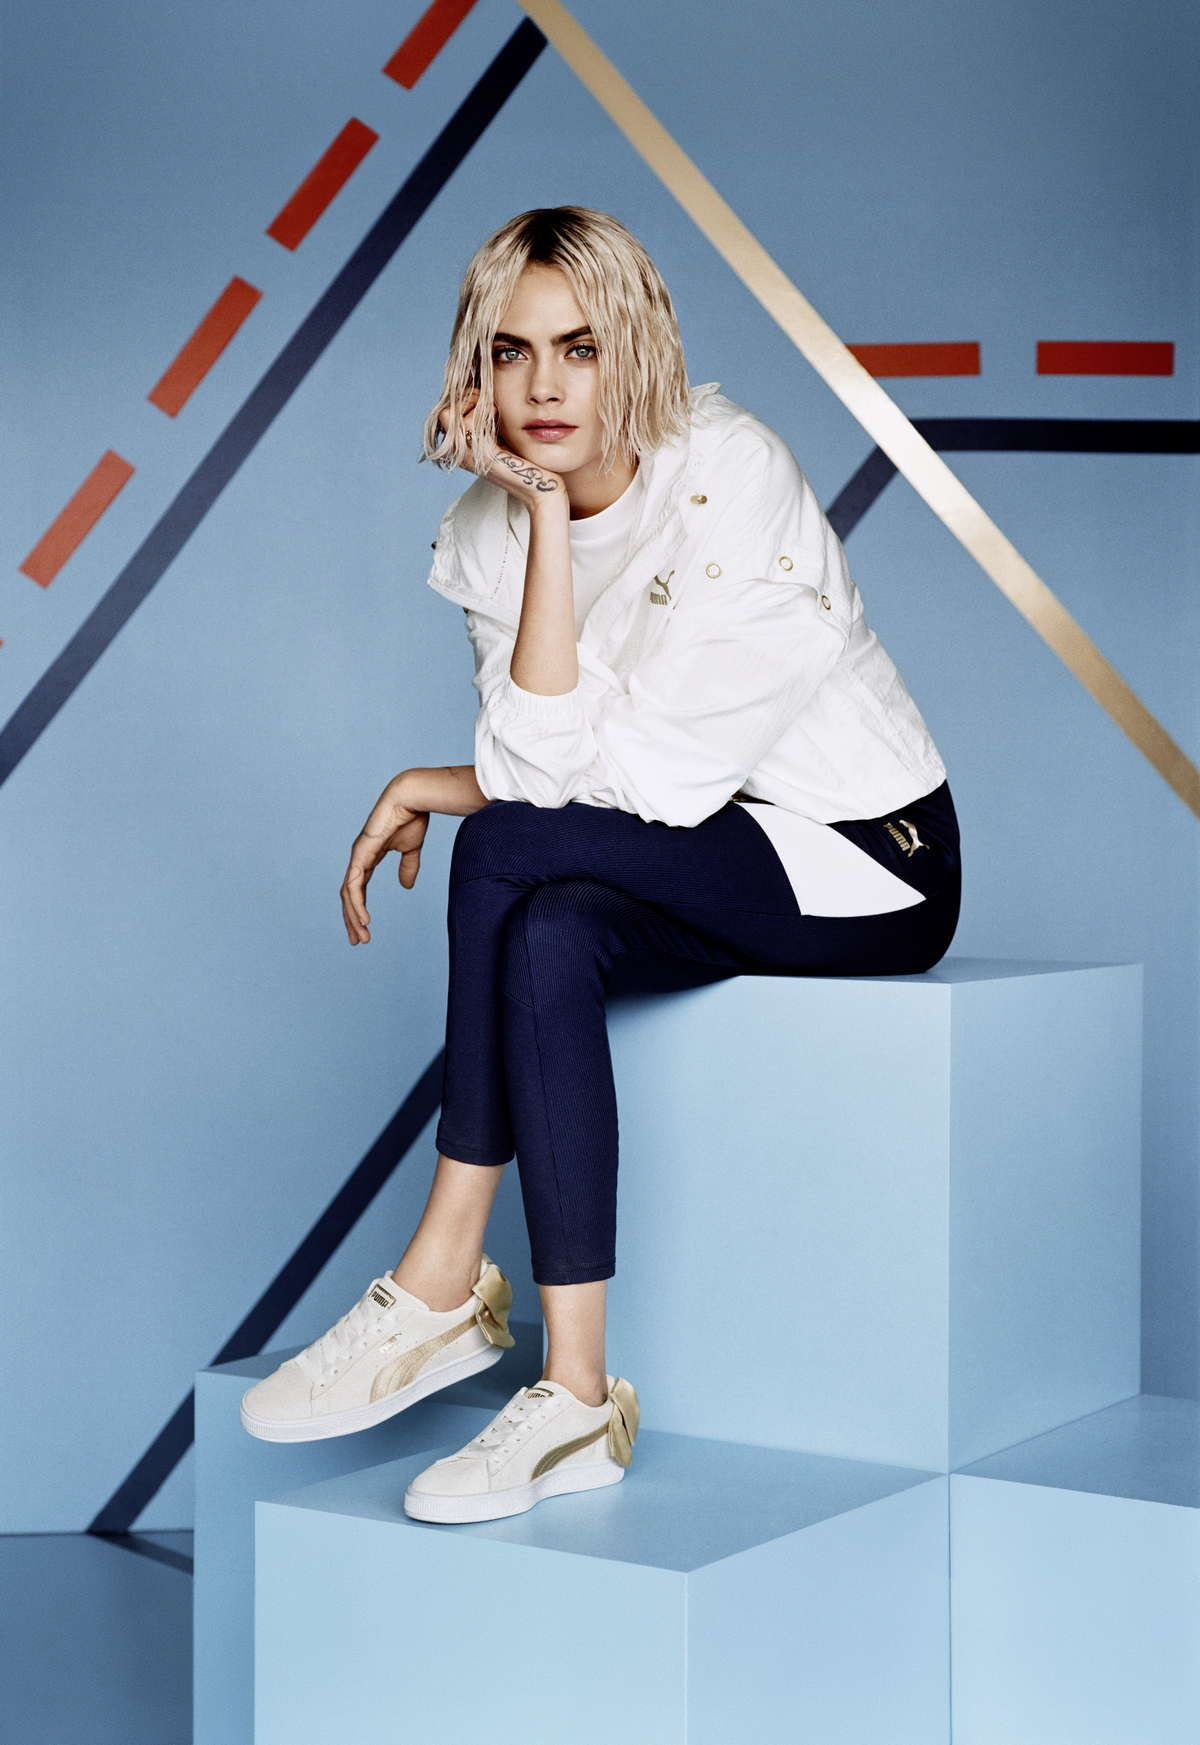 aedc557284d Cara Delevingne – Puma Suede Bow Varsity Trainer Campaign  caradeleningne   puma  campaign  photoshoot  celebrities  shoes